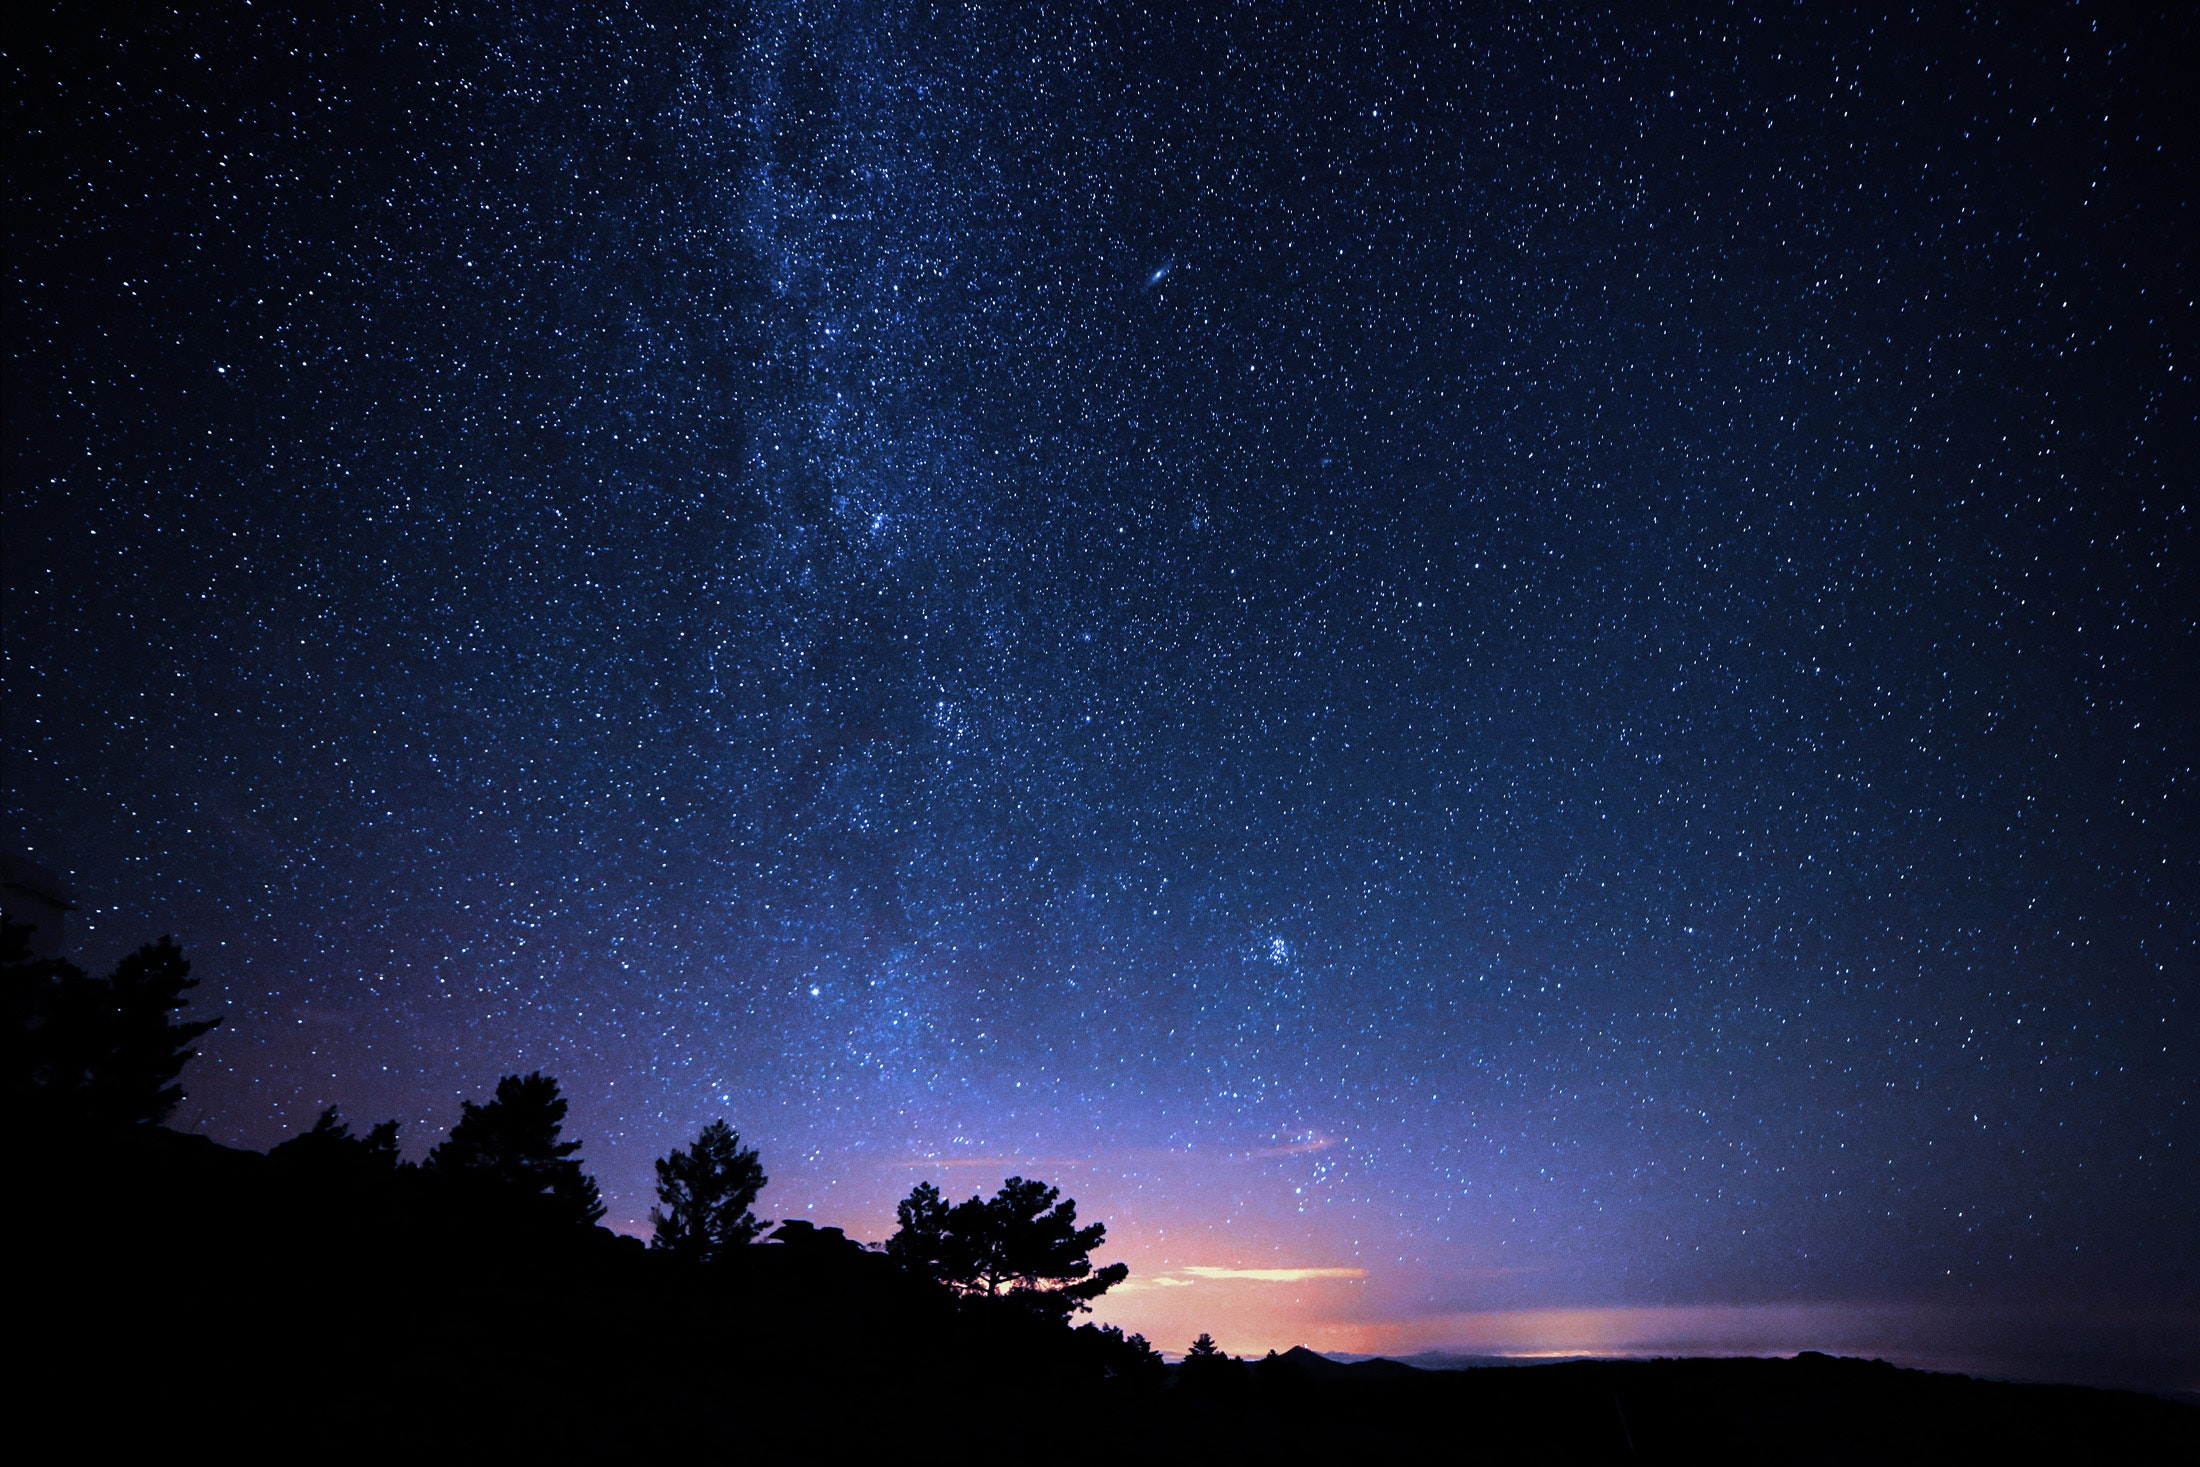 Silhouette Photo of Trees during Night Time, Outdoors, Trees, Stars, Starry sky, HQ Photo